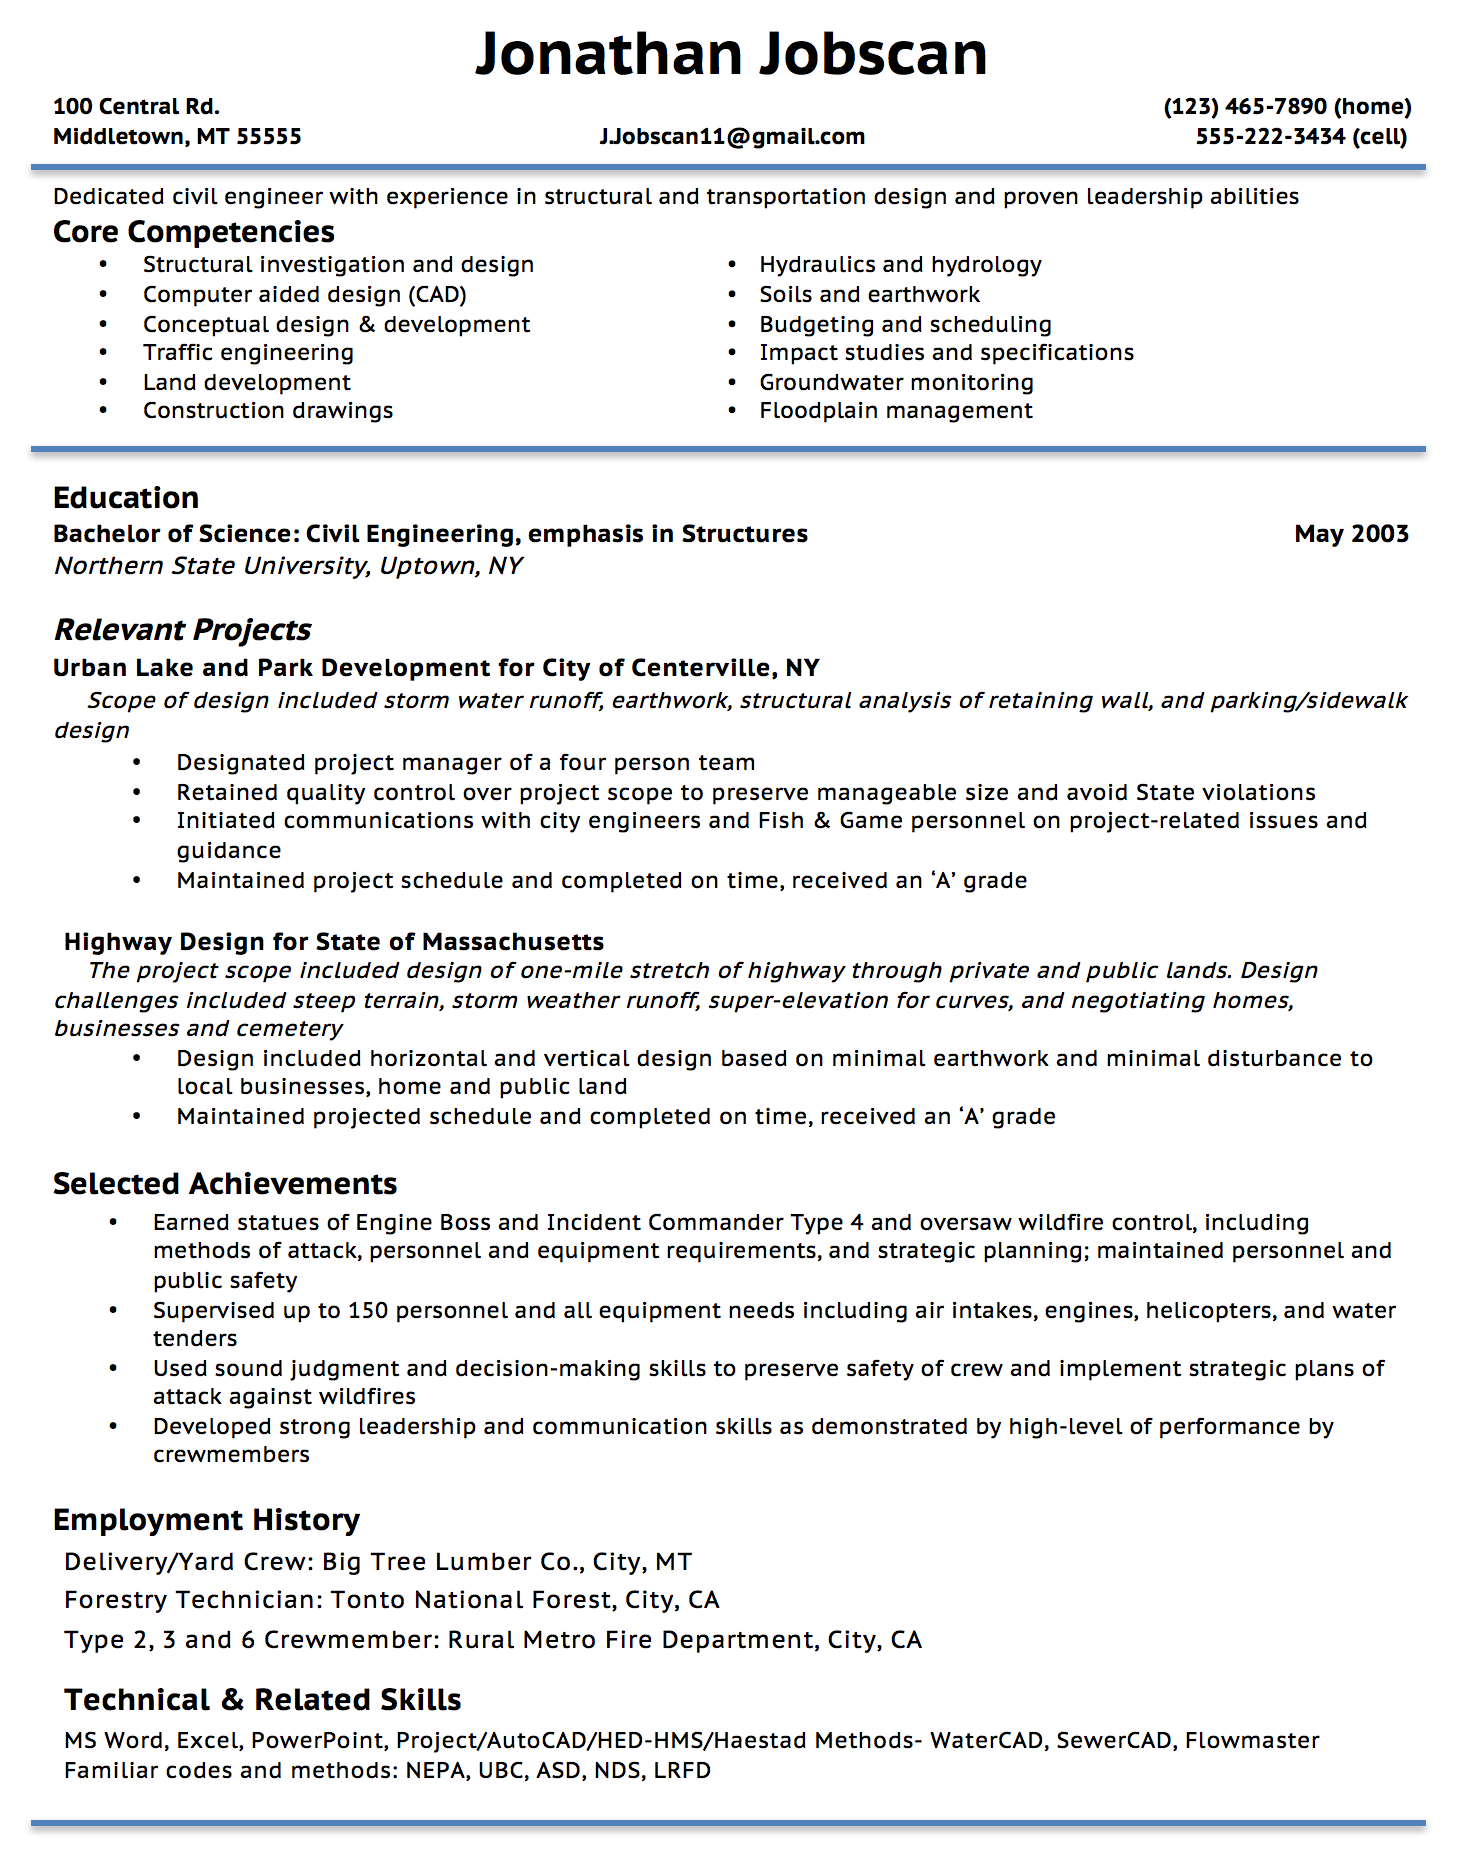 Opposenewapstandardsus  Outstanding Resume Writing Guide  Jobscan With Foxy Example Of A Functional Resume Format With Astounding Bank Branch Manager Resume Also Nursing Resume Builder In Addition Sales Management Resume And Accountant Resume Objective As Well As Resume For Homemaker Additionally Resume Teamwork From Jobscanco With Opposenewapstandardsus  Foxy Resume Writing Guide  Jobscan With Astounding Example Of A Functional Resume Format And Outstanding Bank Branch Manager Resume Also Nursing Resume Builder In Addition Sales Management Resume From Jobscanco